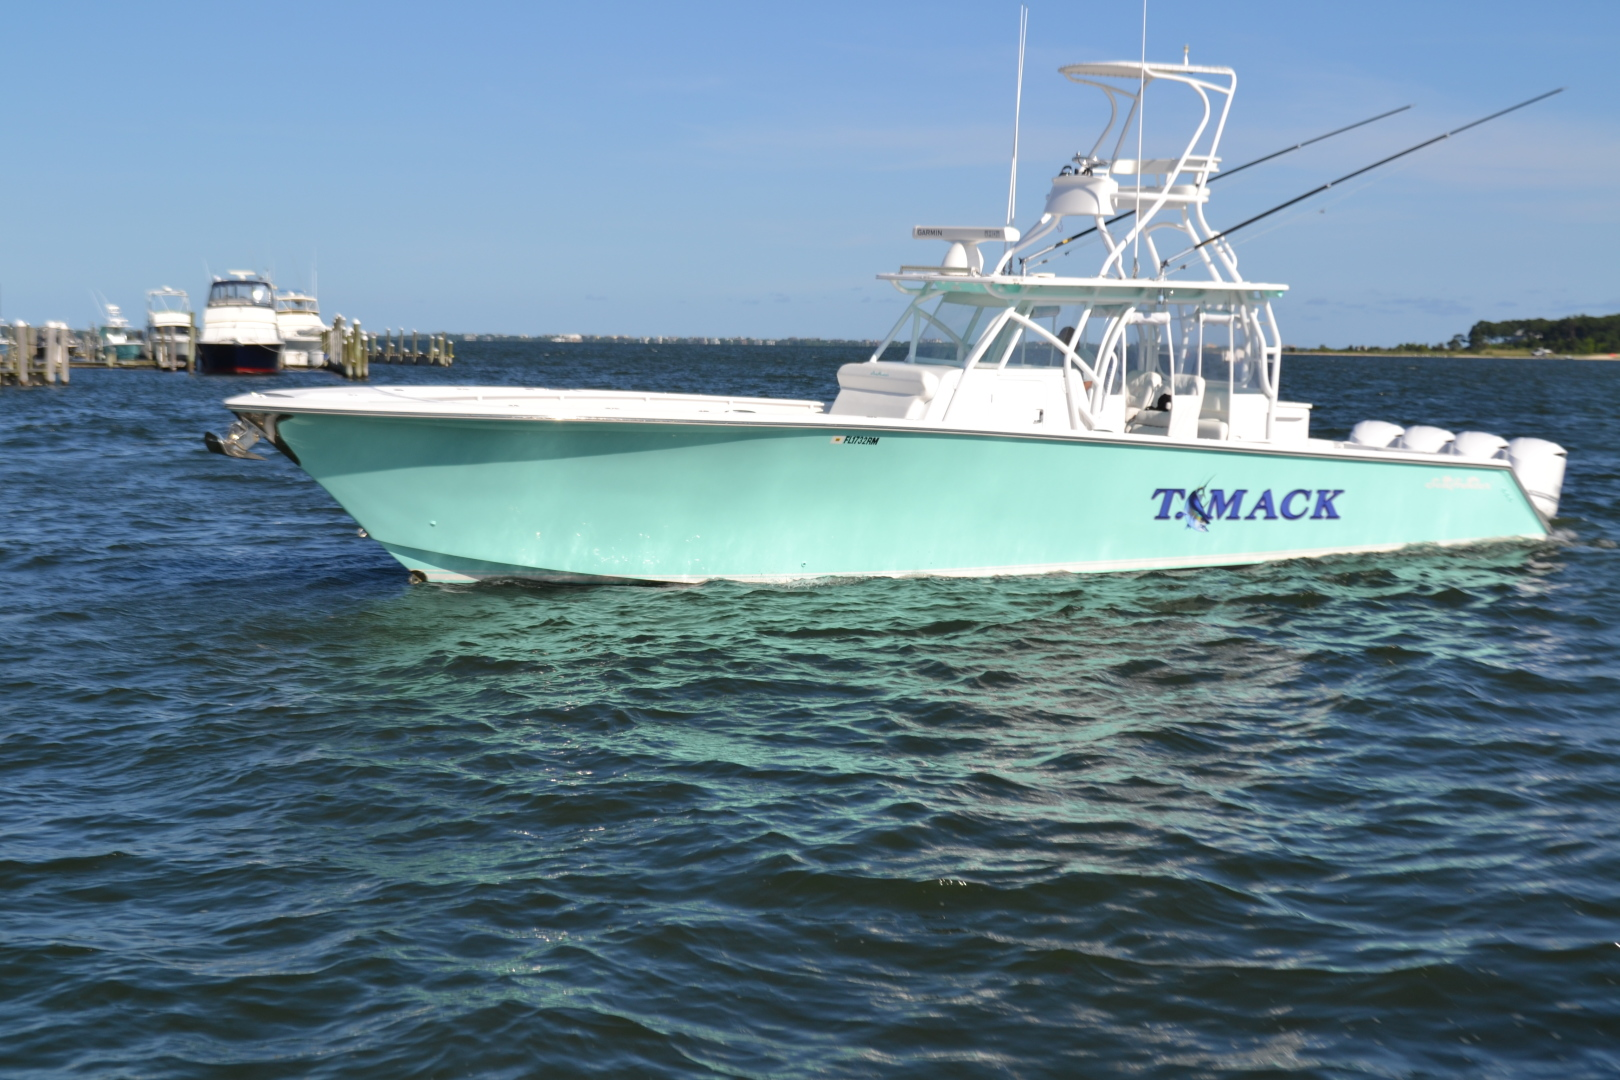 SeaHunter-Center Console 2018-T Mack North Palm Beach-Florida-United States-T Mack-1460889 | Thumbnail